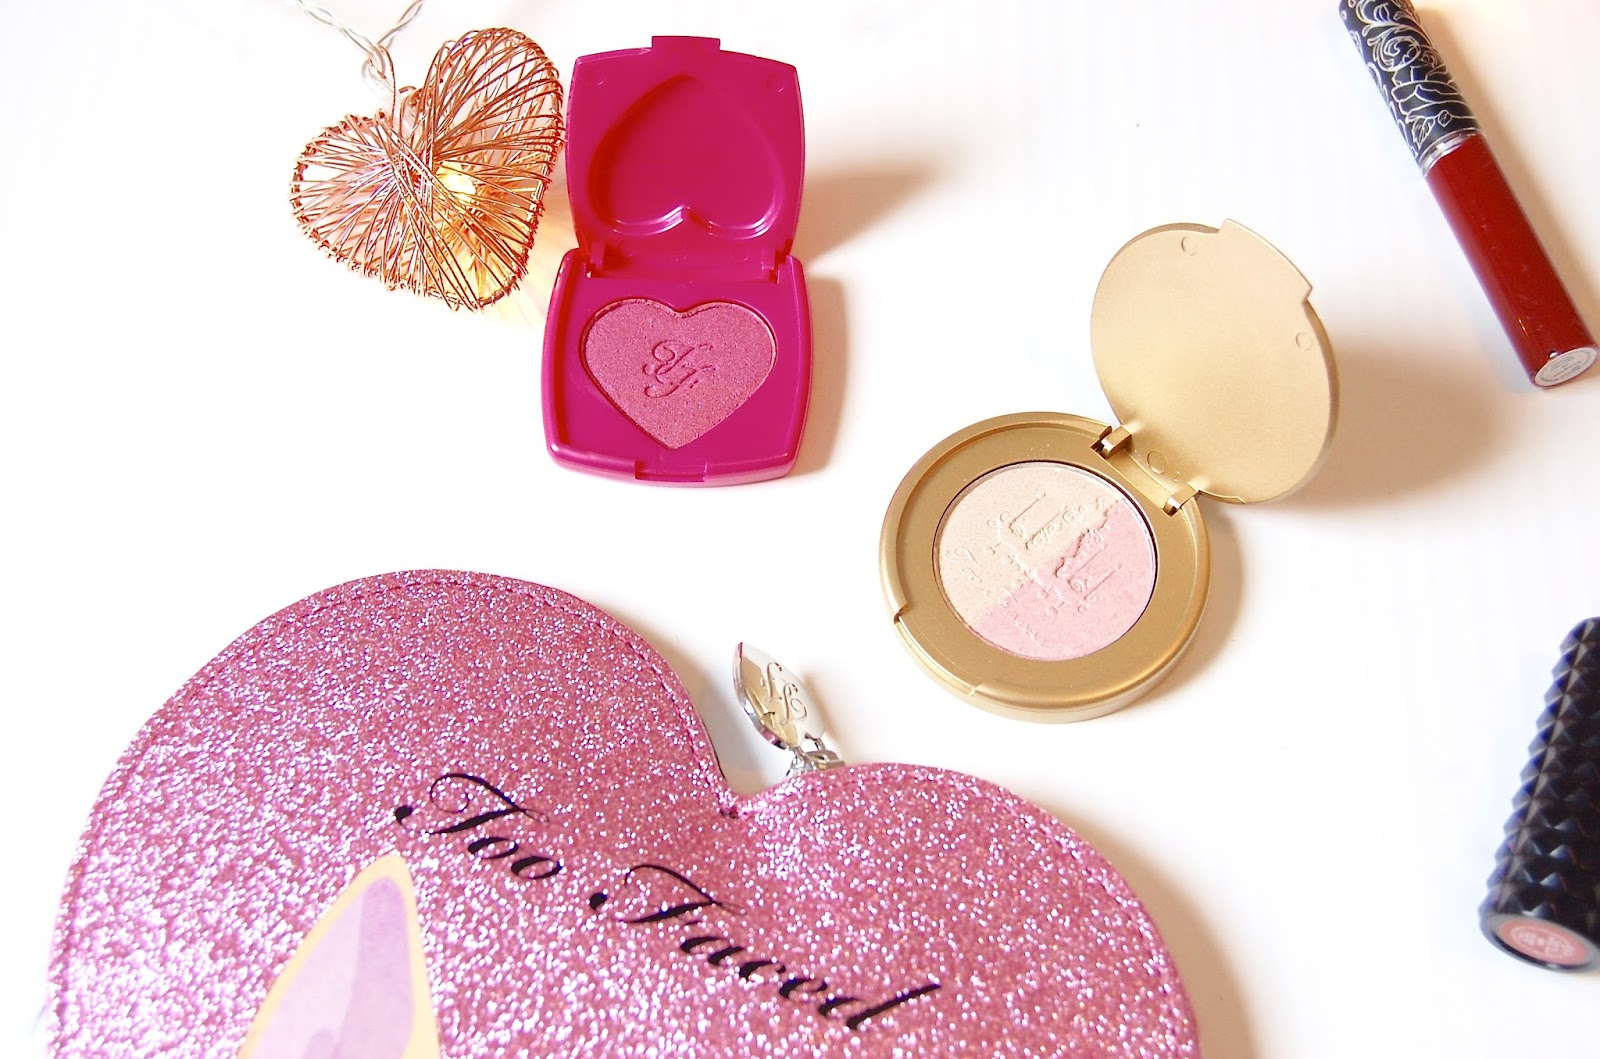 Too Faced x KVD Better Together Set